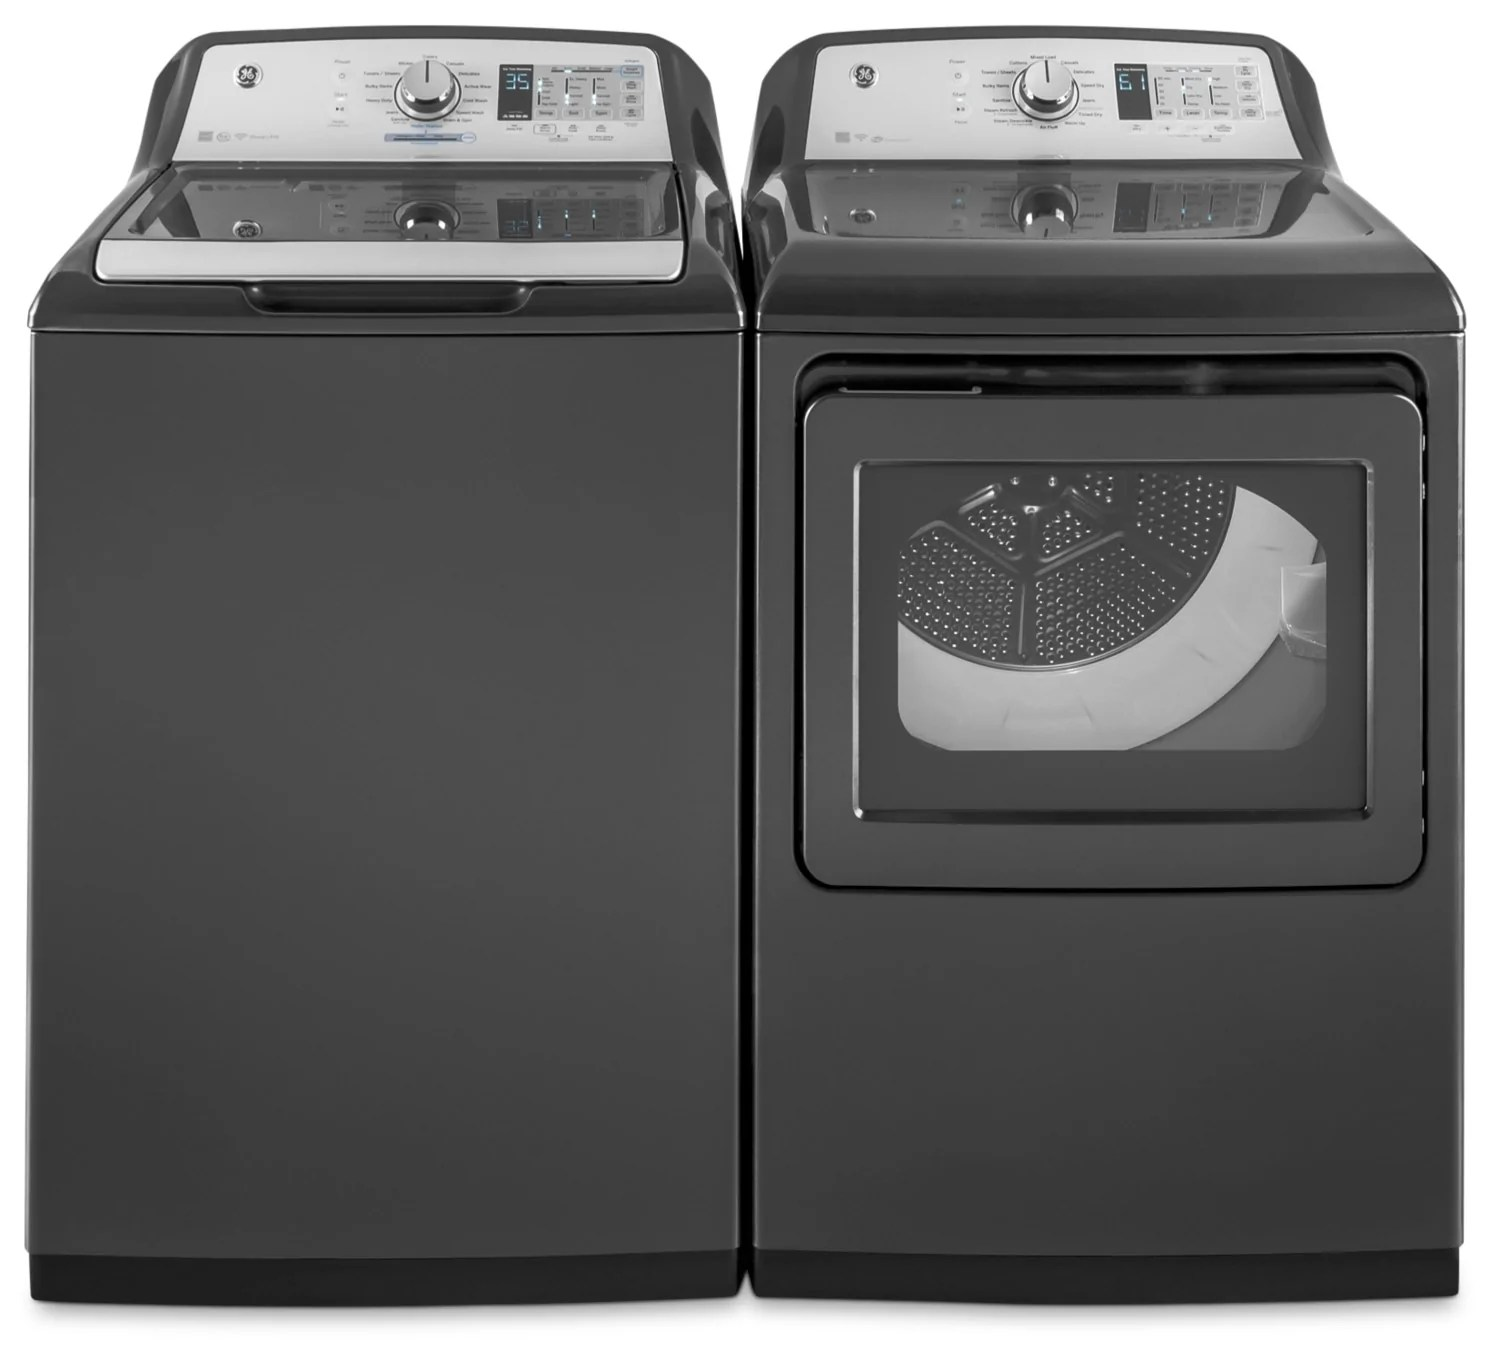 Ge Laveuse Ge 5 3 Cu Ft Top Load Washer And 7 4 Cu Ft Electric Dryer